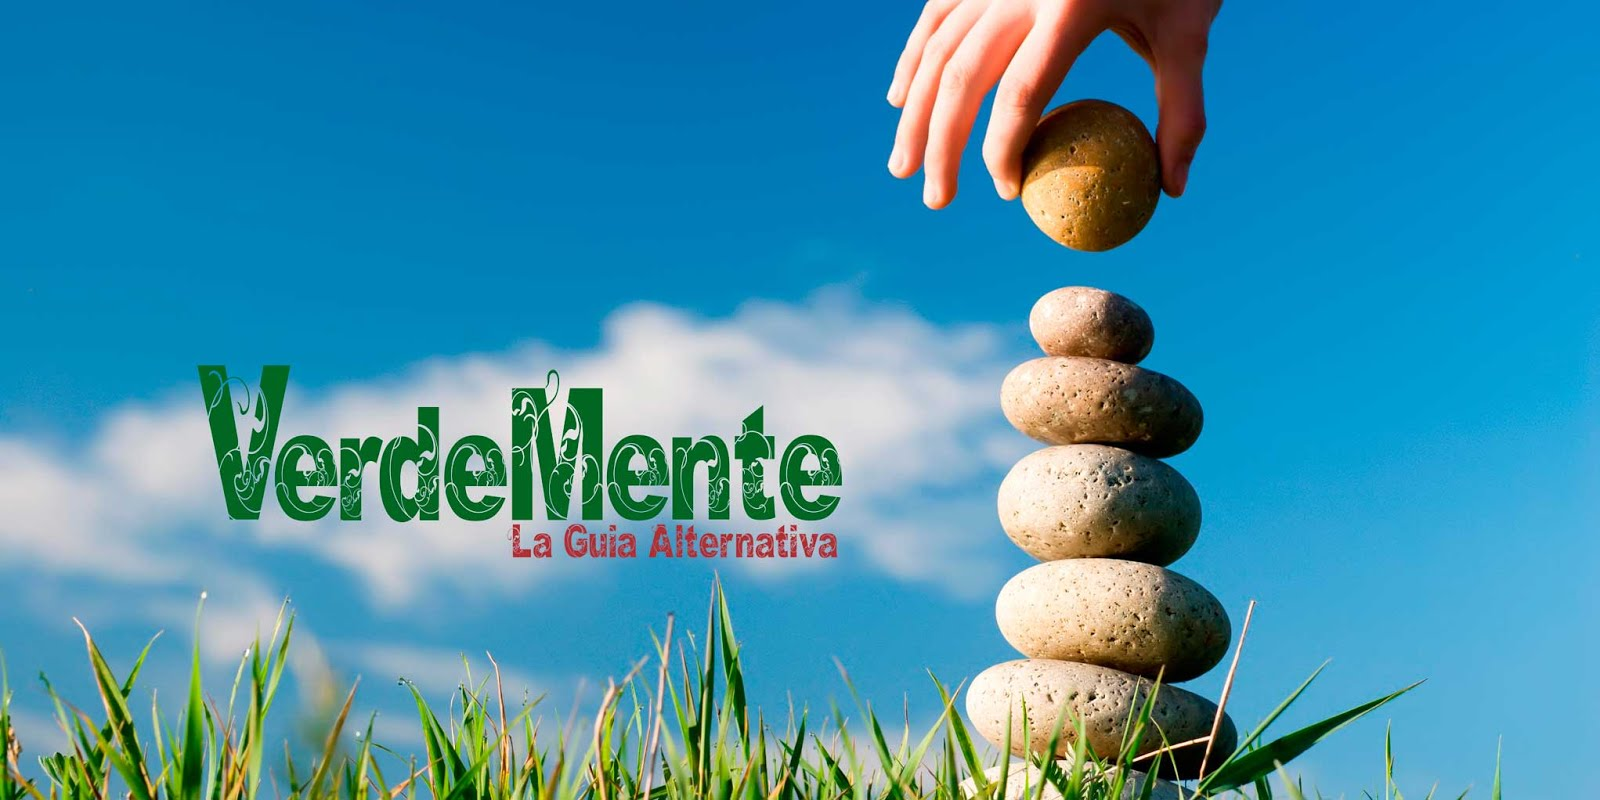 Revista VerdeMente. La Guía Alternativa